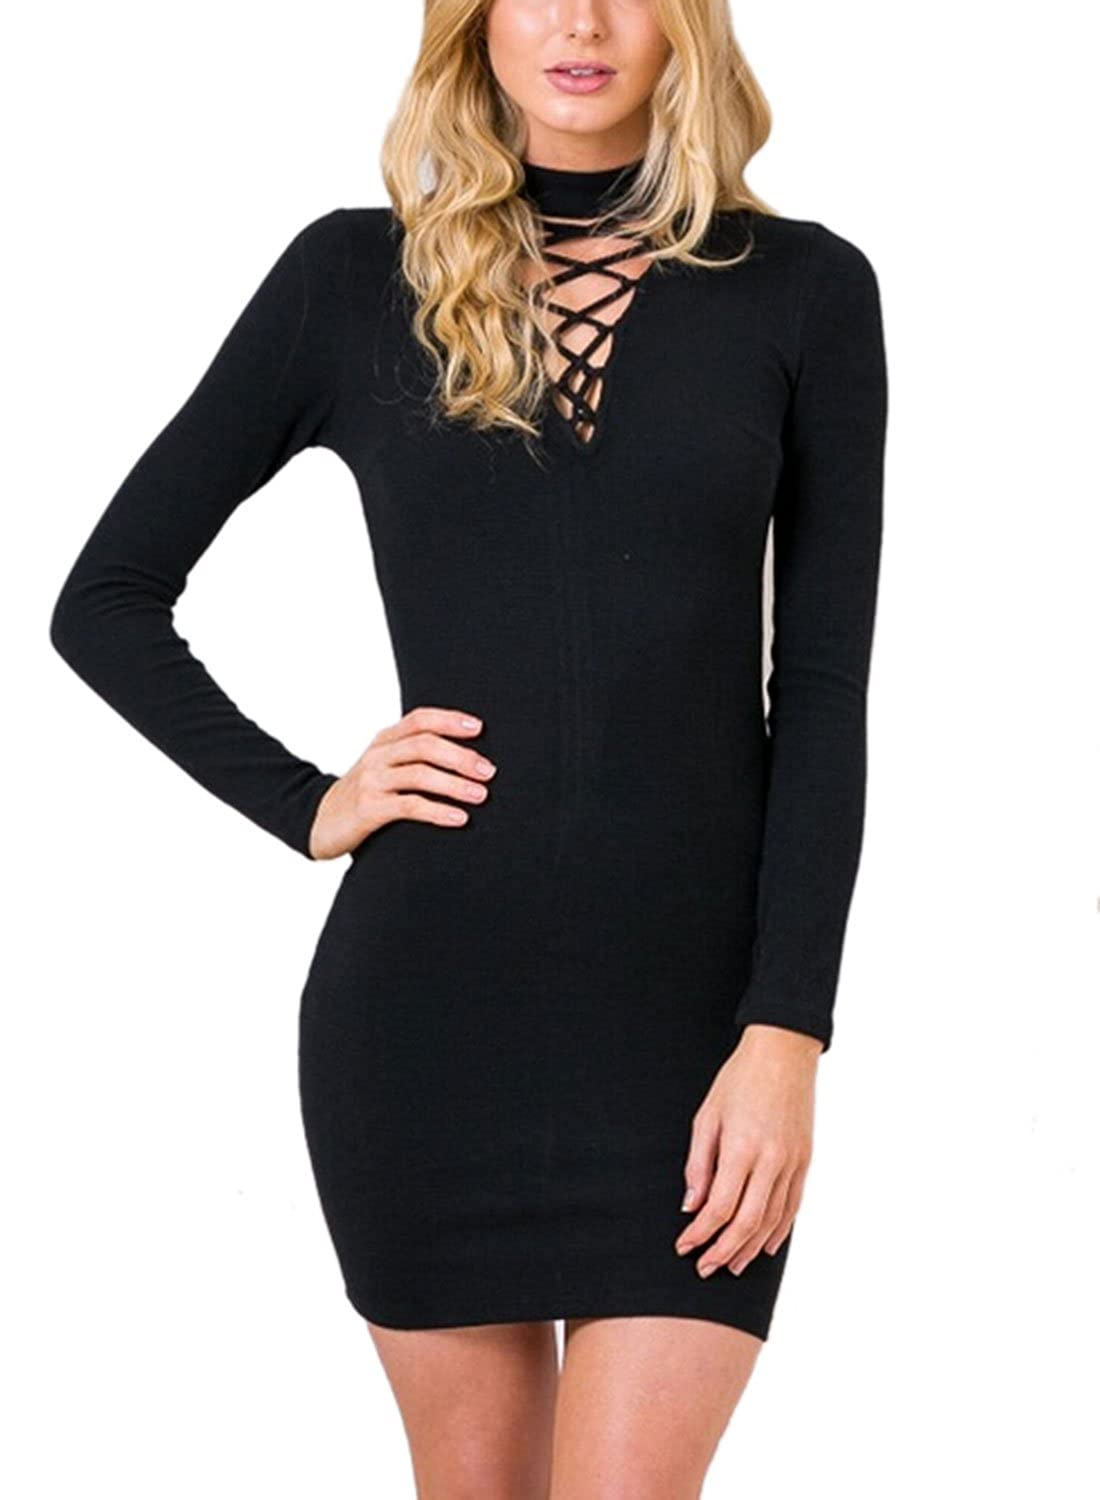 WLLW Women Sexy Long Sleeve Lace Up Deep V Neck Bodycon Dress Mini Dress